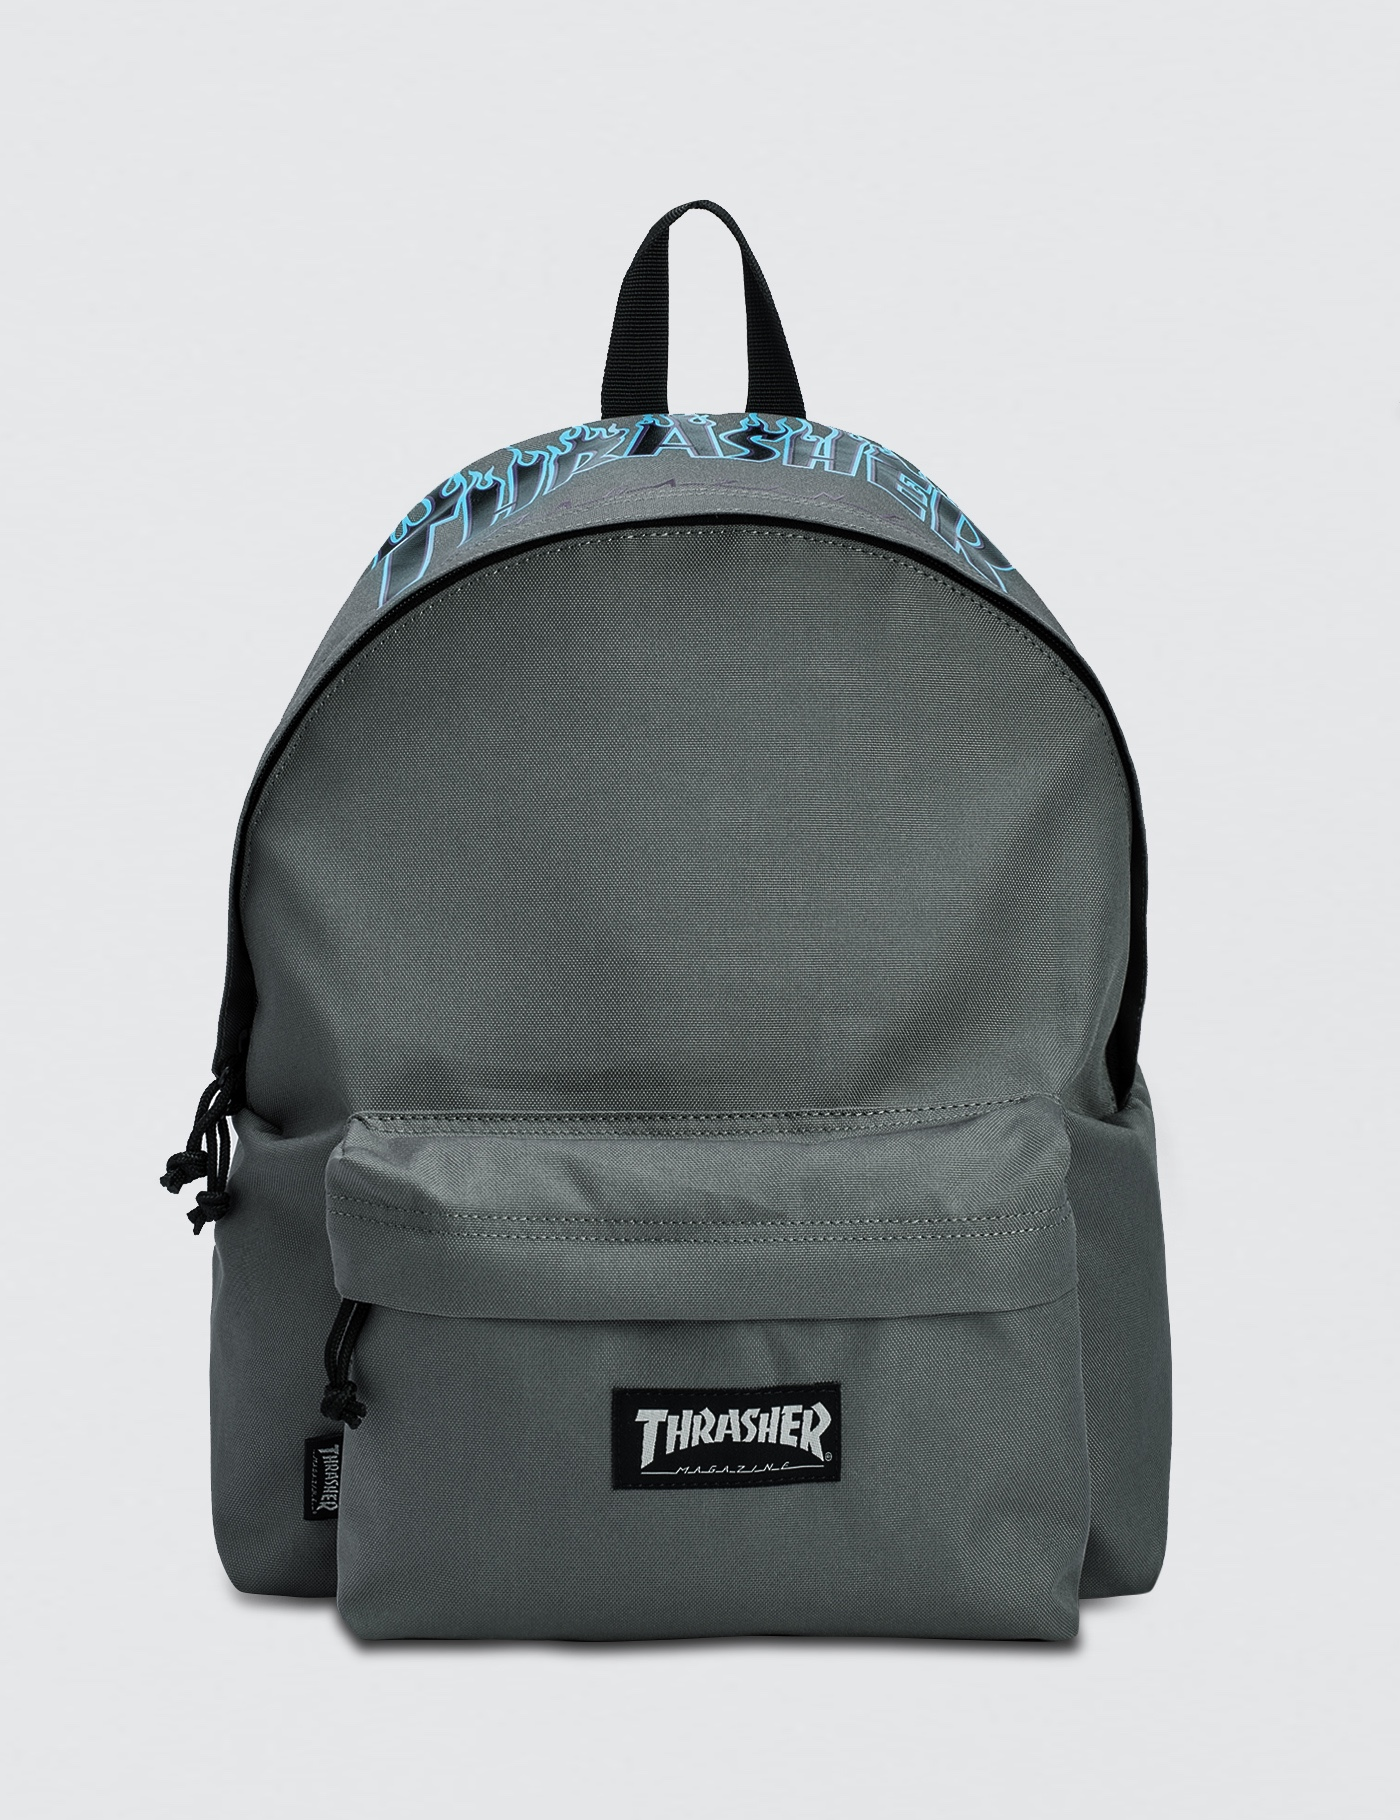 95d25f2eb4fb Buy Original Thrasher Flame Logo Backpack (JP Ver.) at Indonesia ...